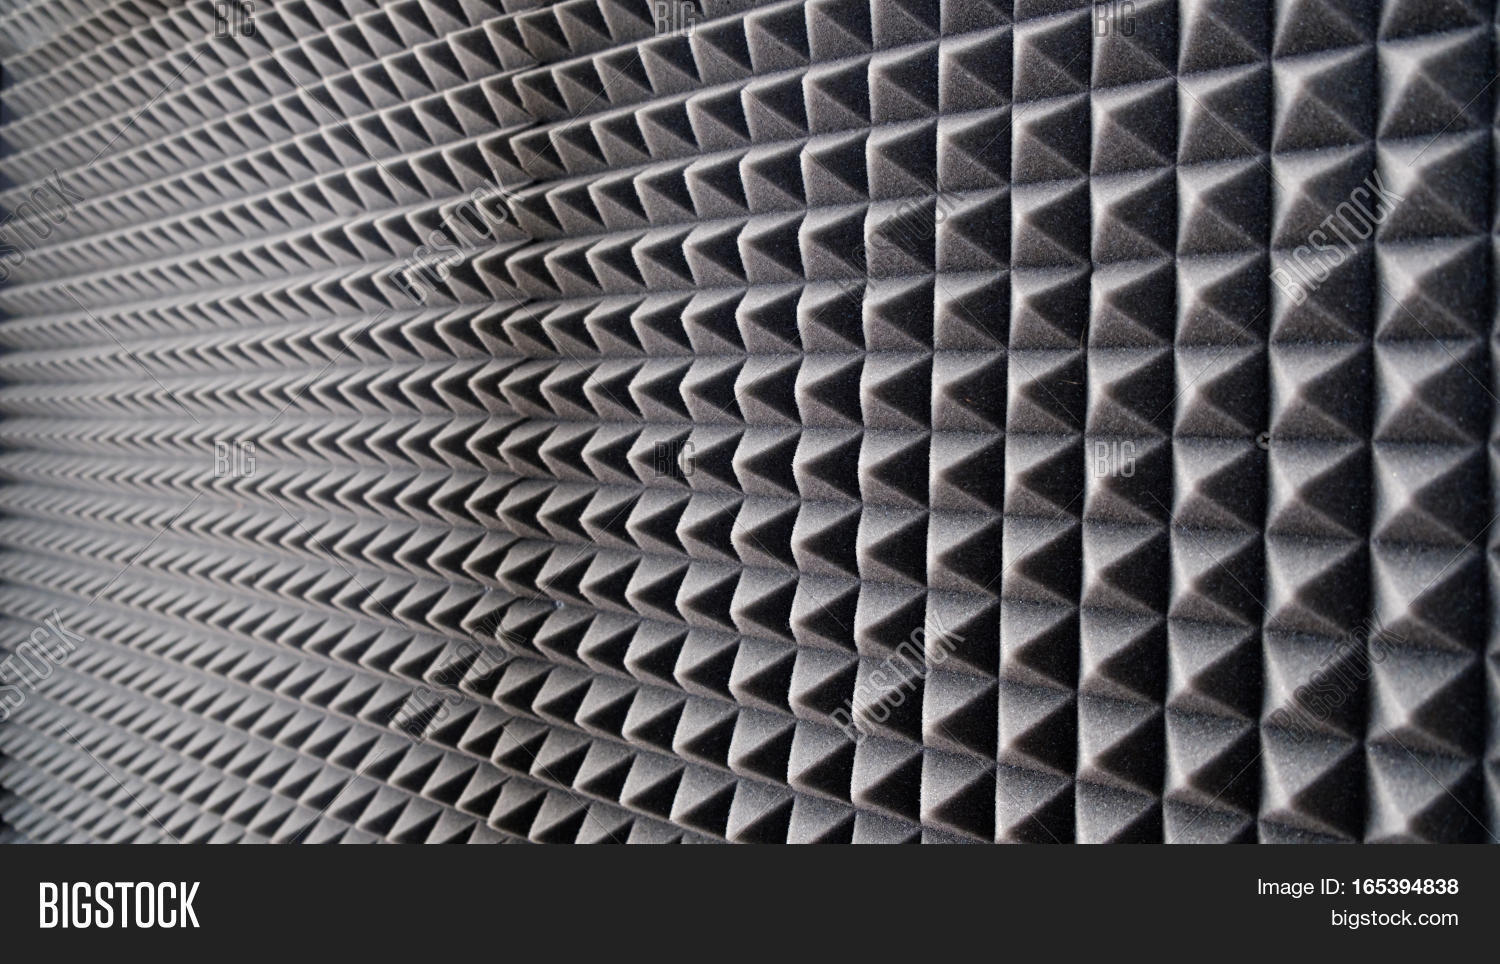 Sound Absorbing Insulation : Sound absorbing materials image photo bigstock